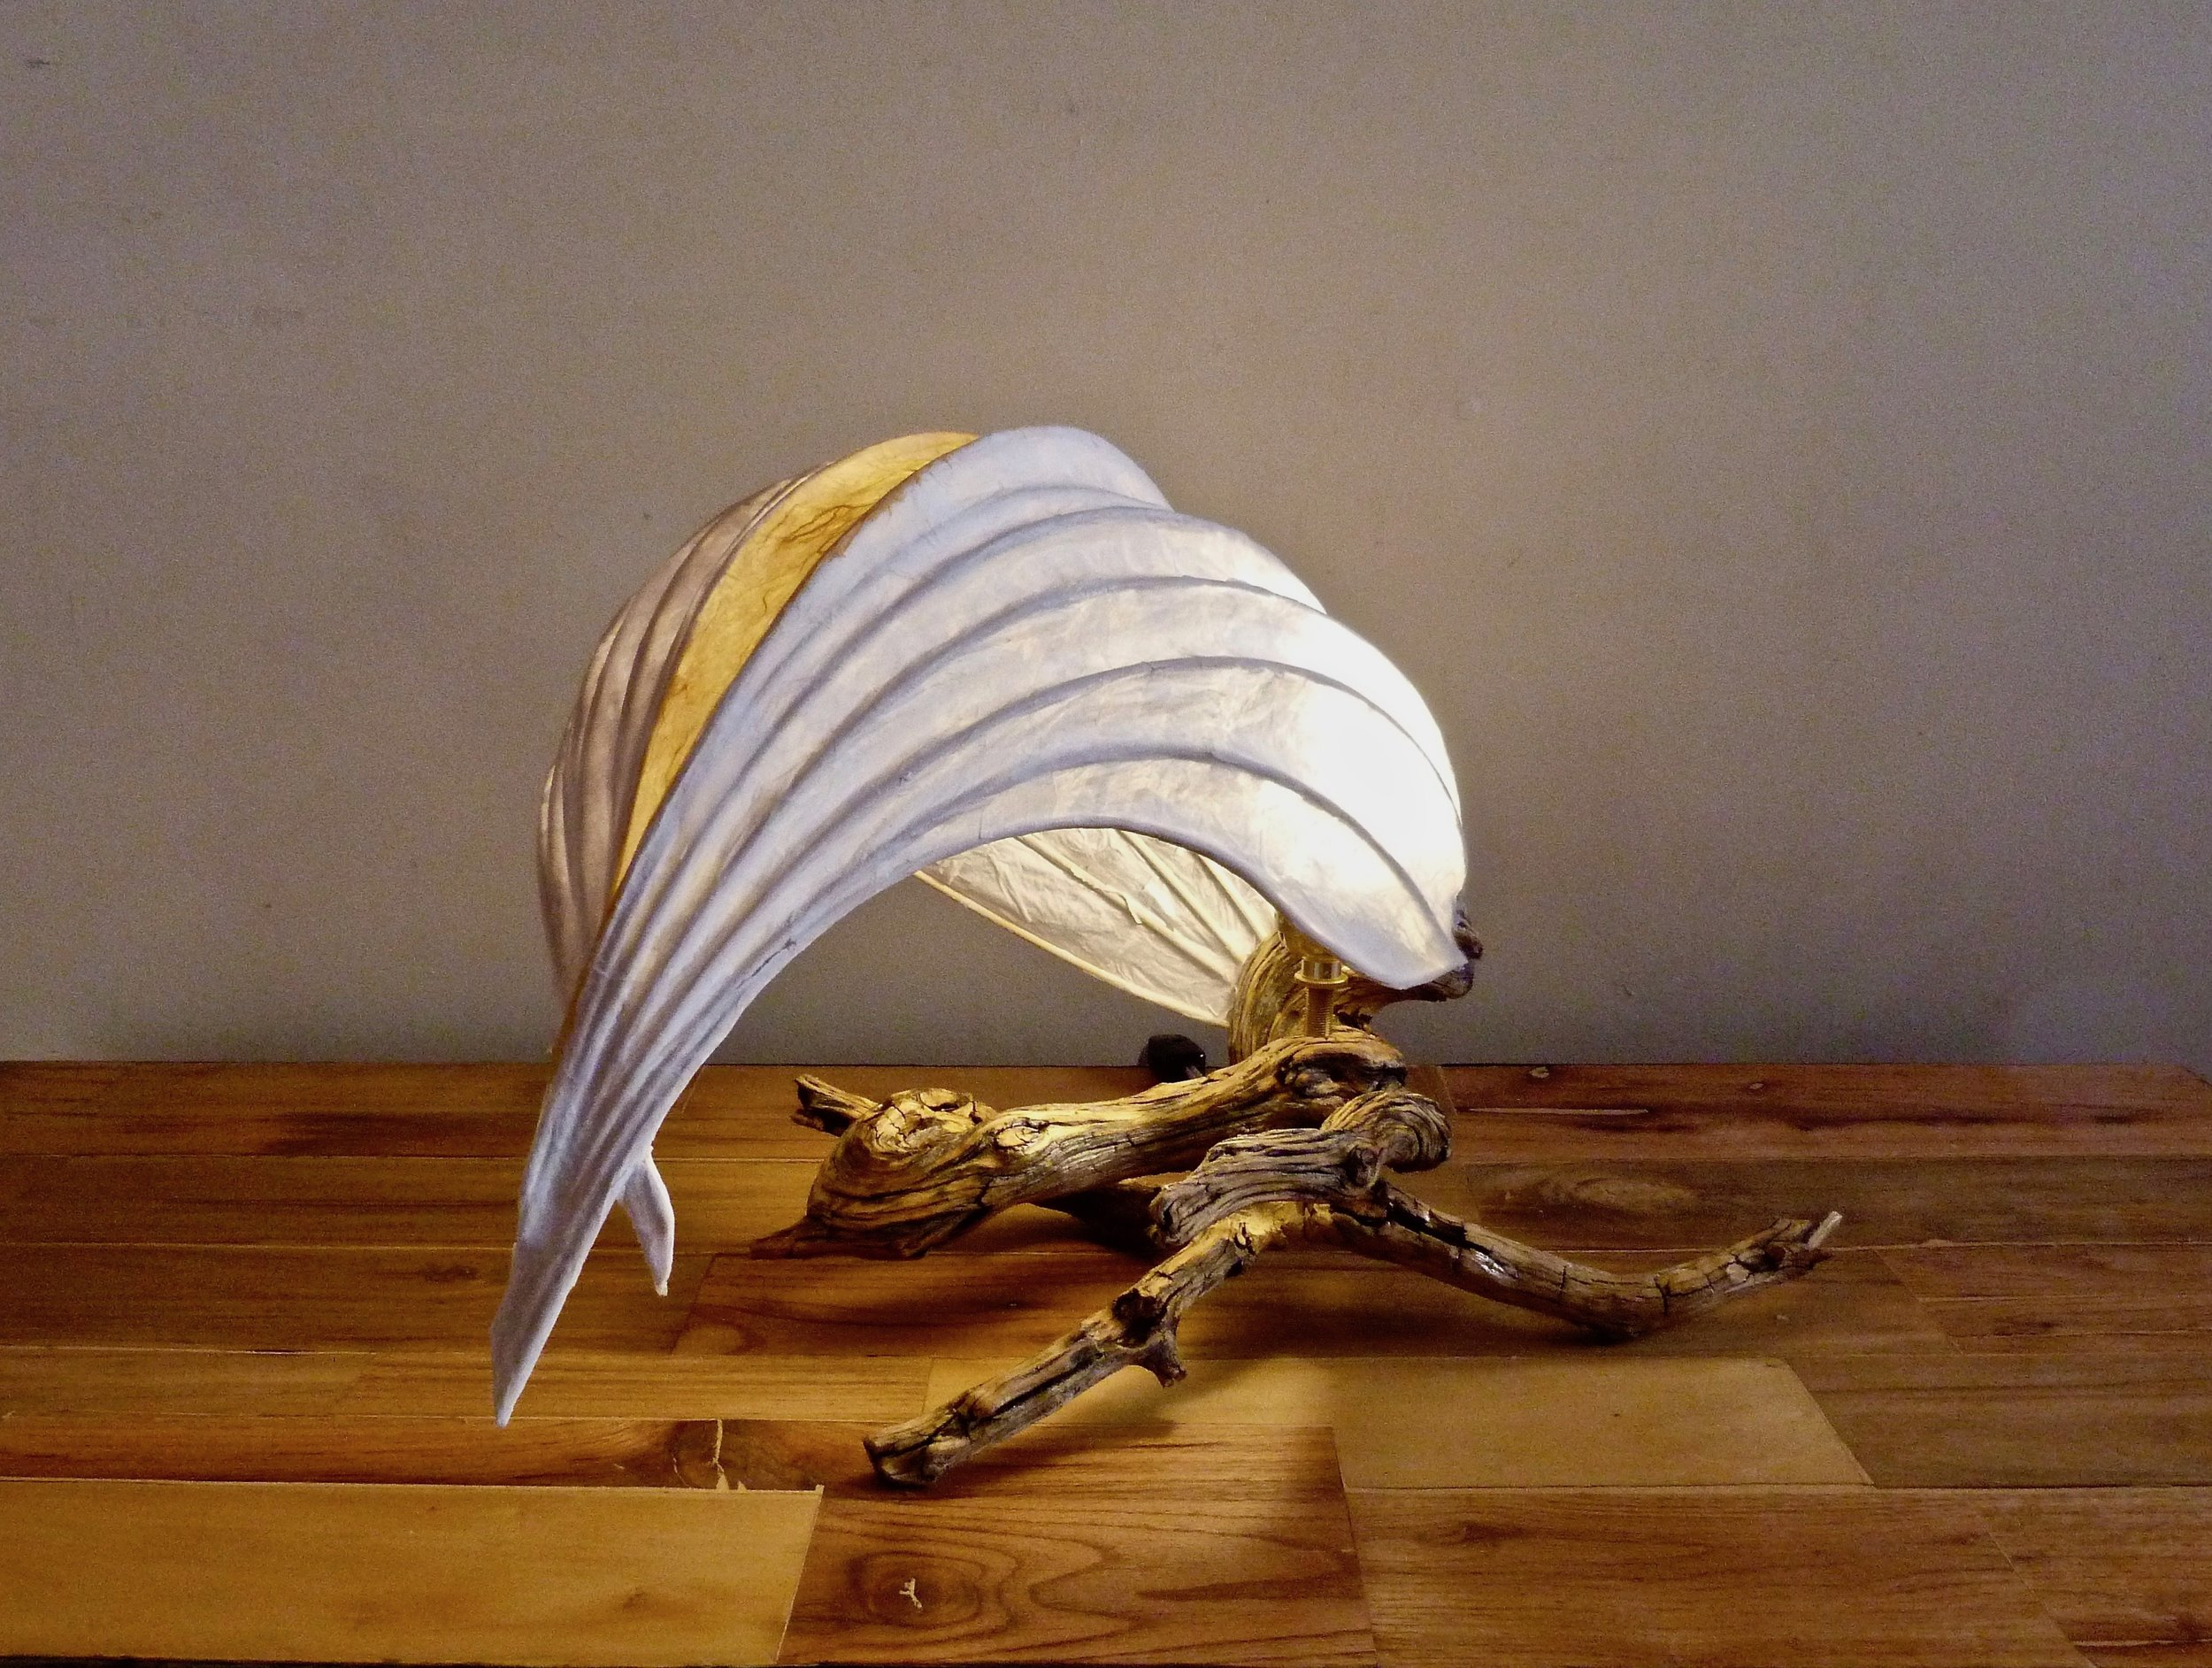 Wings of Silence   Lamp. Bamboo reeds, silk tissue paper, wood, glue, cedar branch